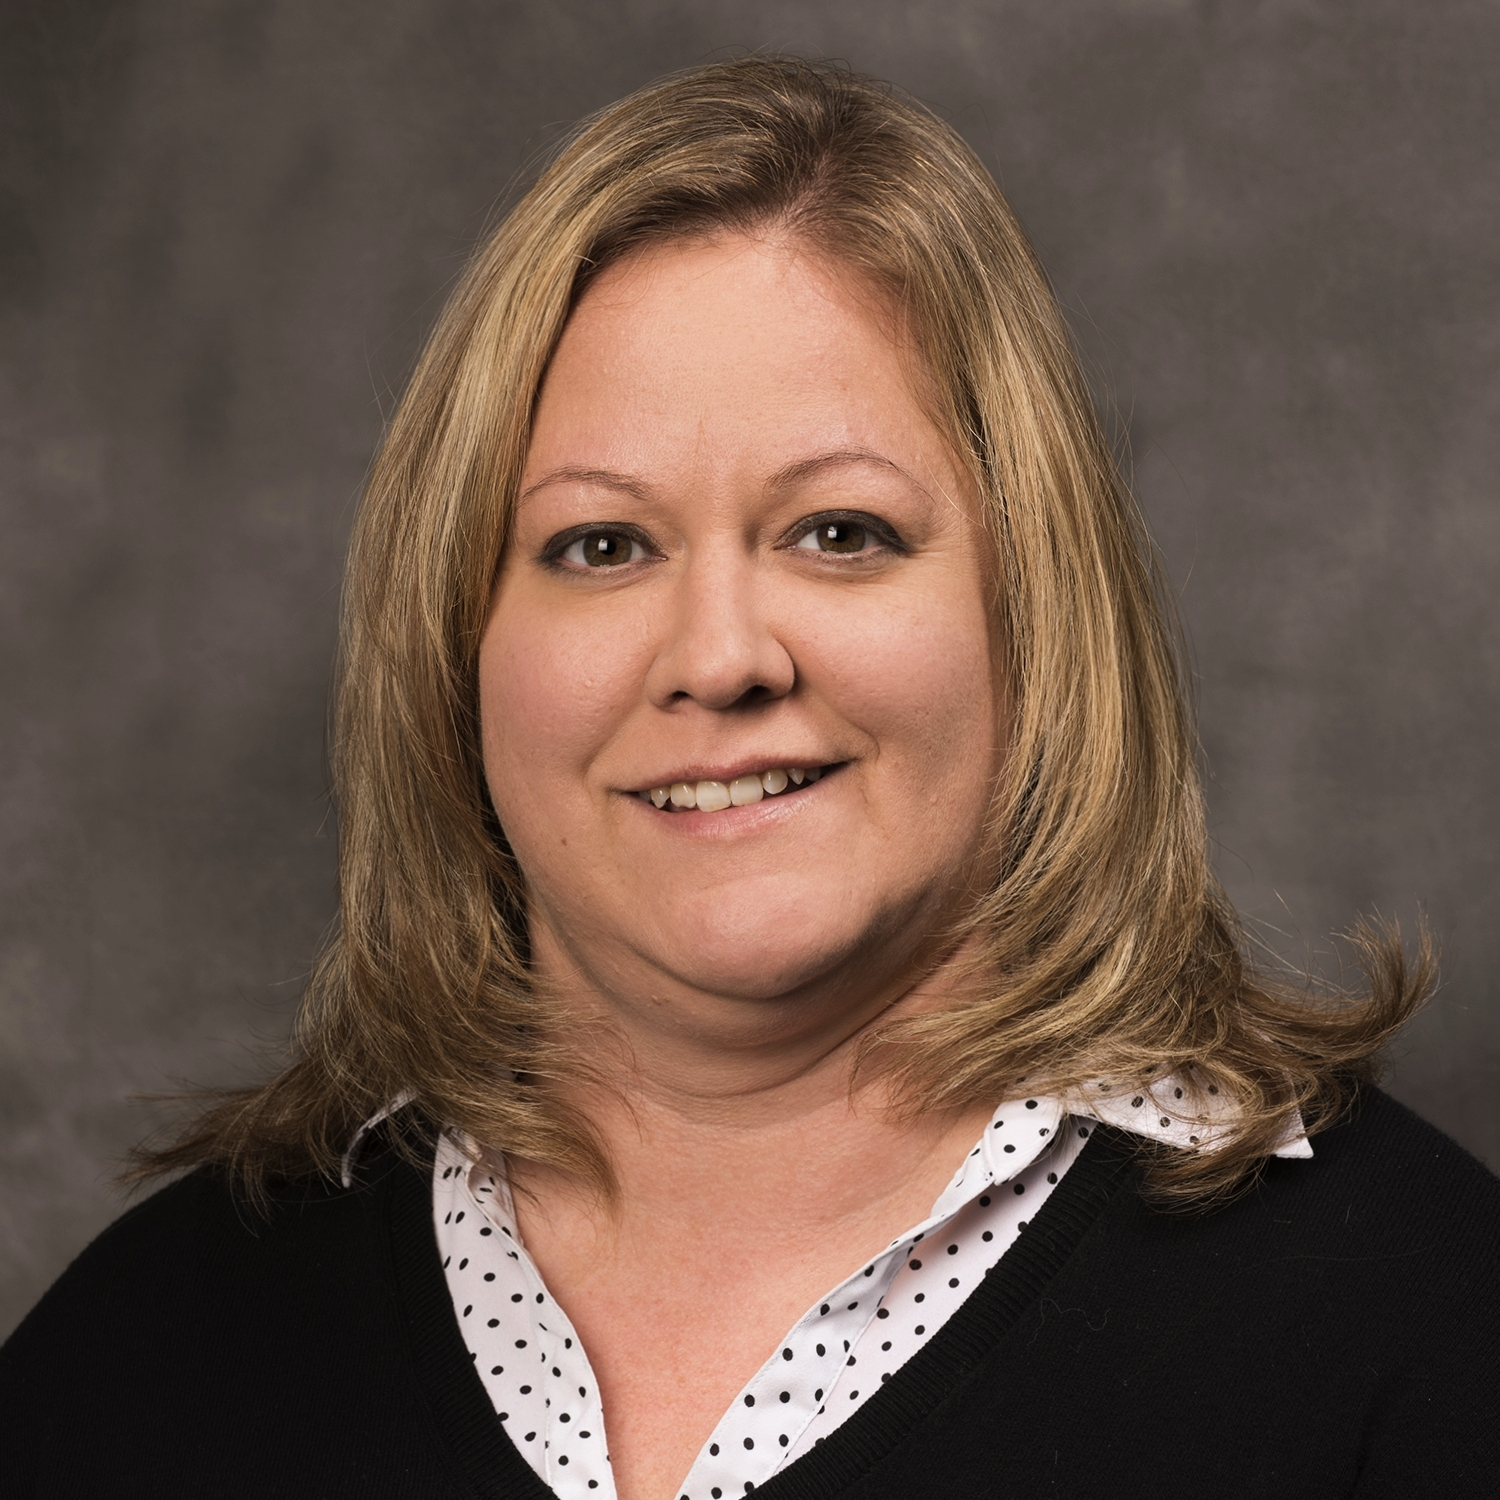 Lea Ames, MBASSM Health - Lea Ames is the System Director of Mission-Values Programming. SSM Health has been a member of the Supportive Care Coalition since 1998.